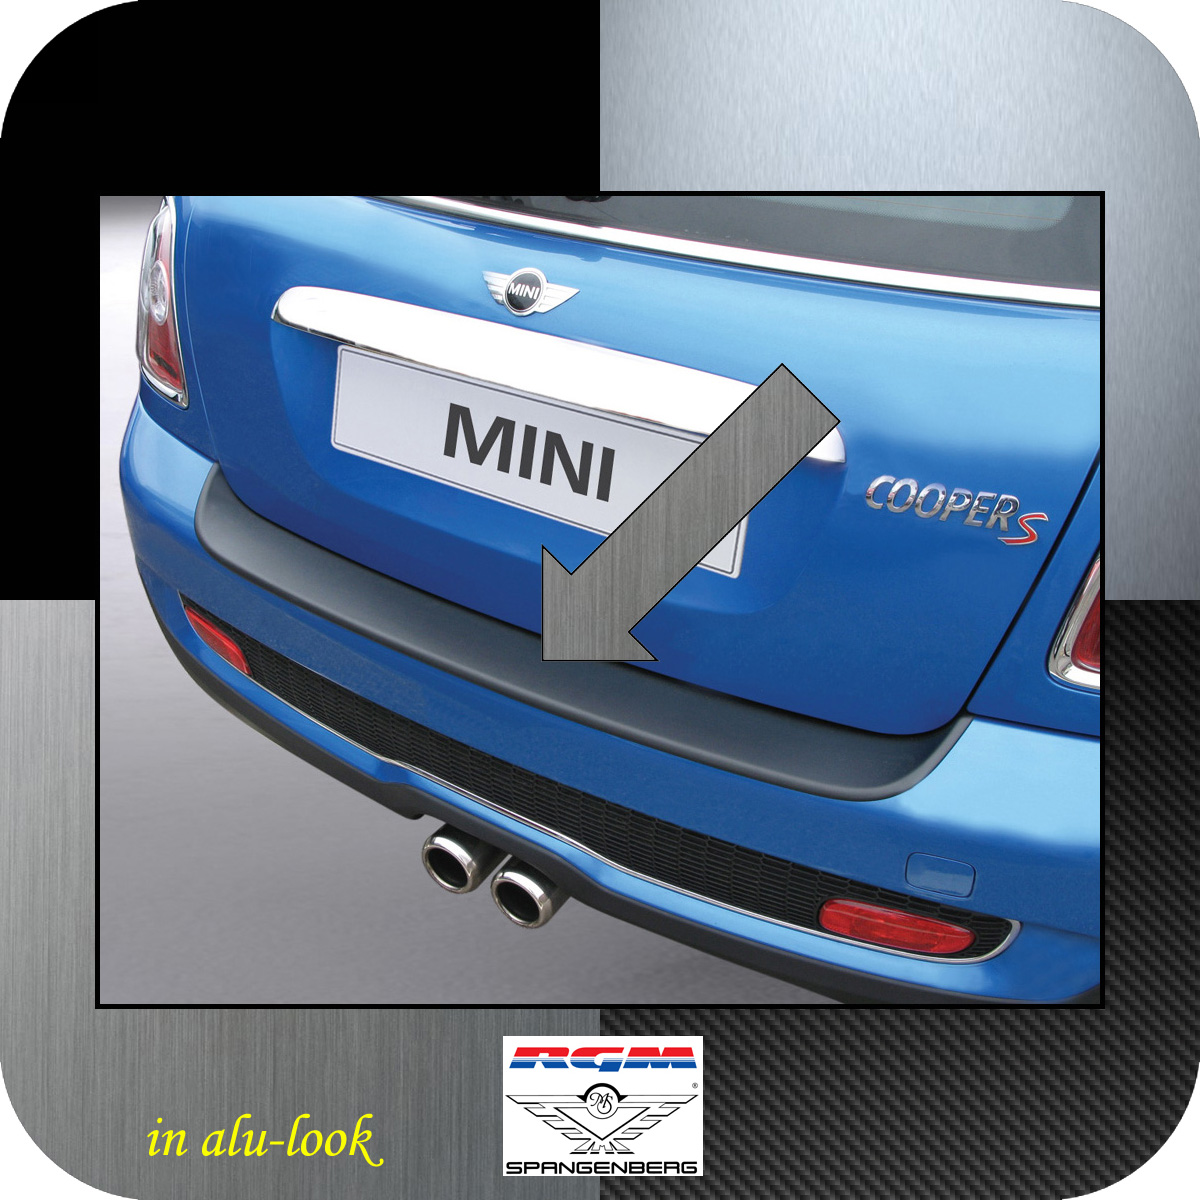 Ladekantenschutz Alu-Look Mini BMW Roadster Cooper R59 ab Bj 2012- 3504102